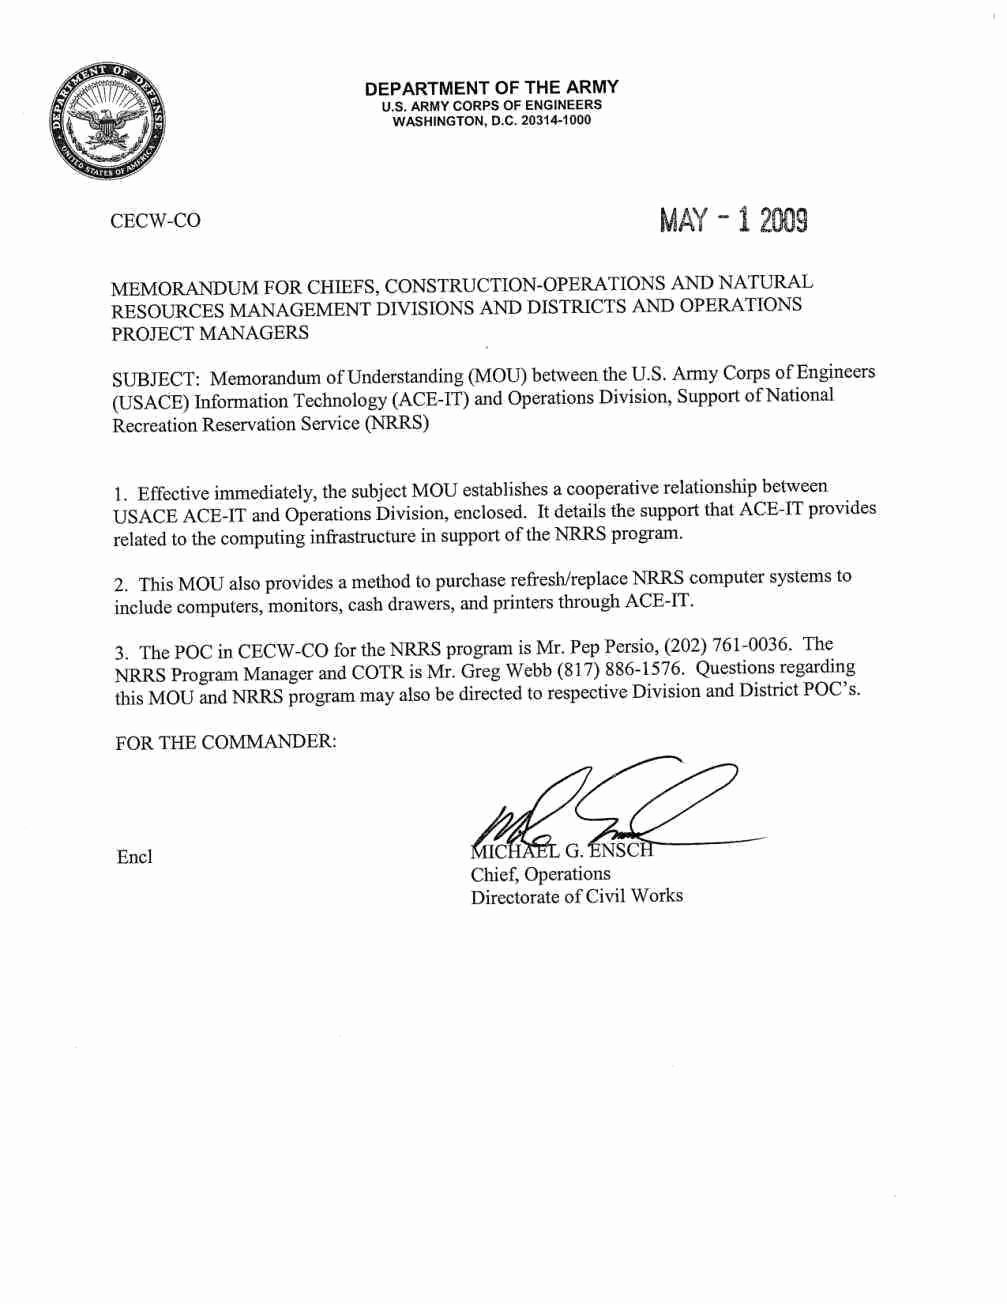 Army Memo for Record Doc